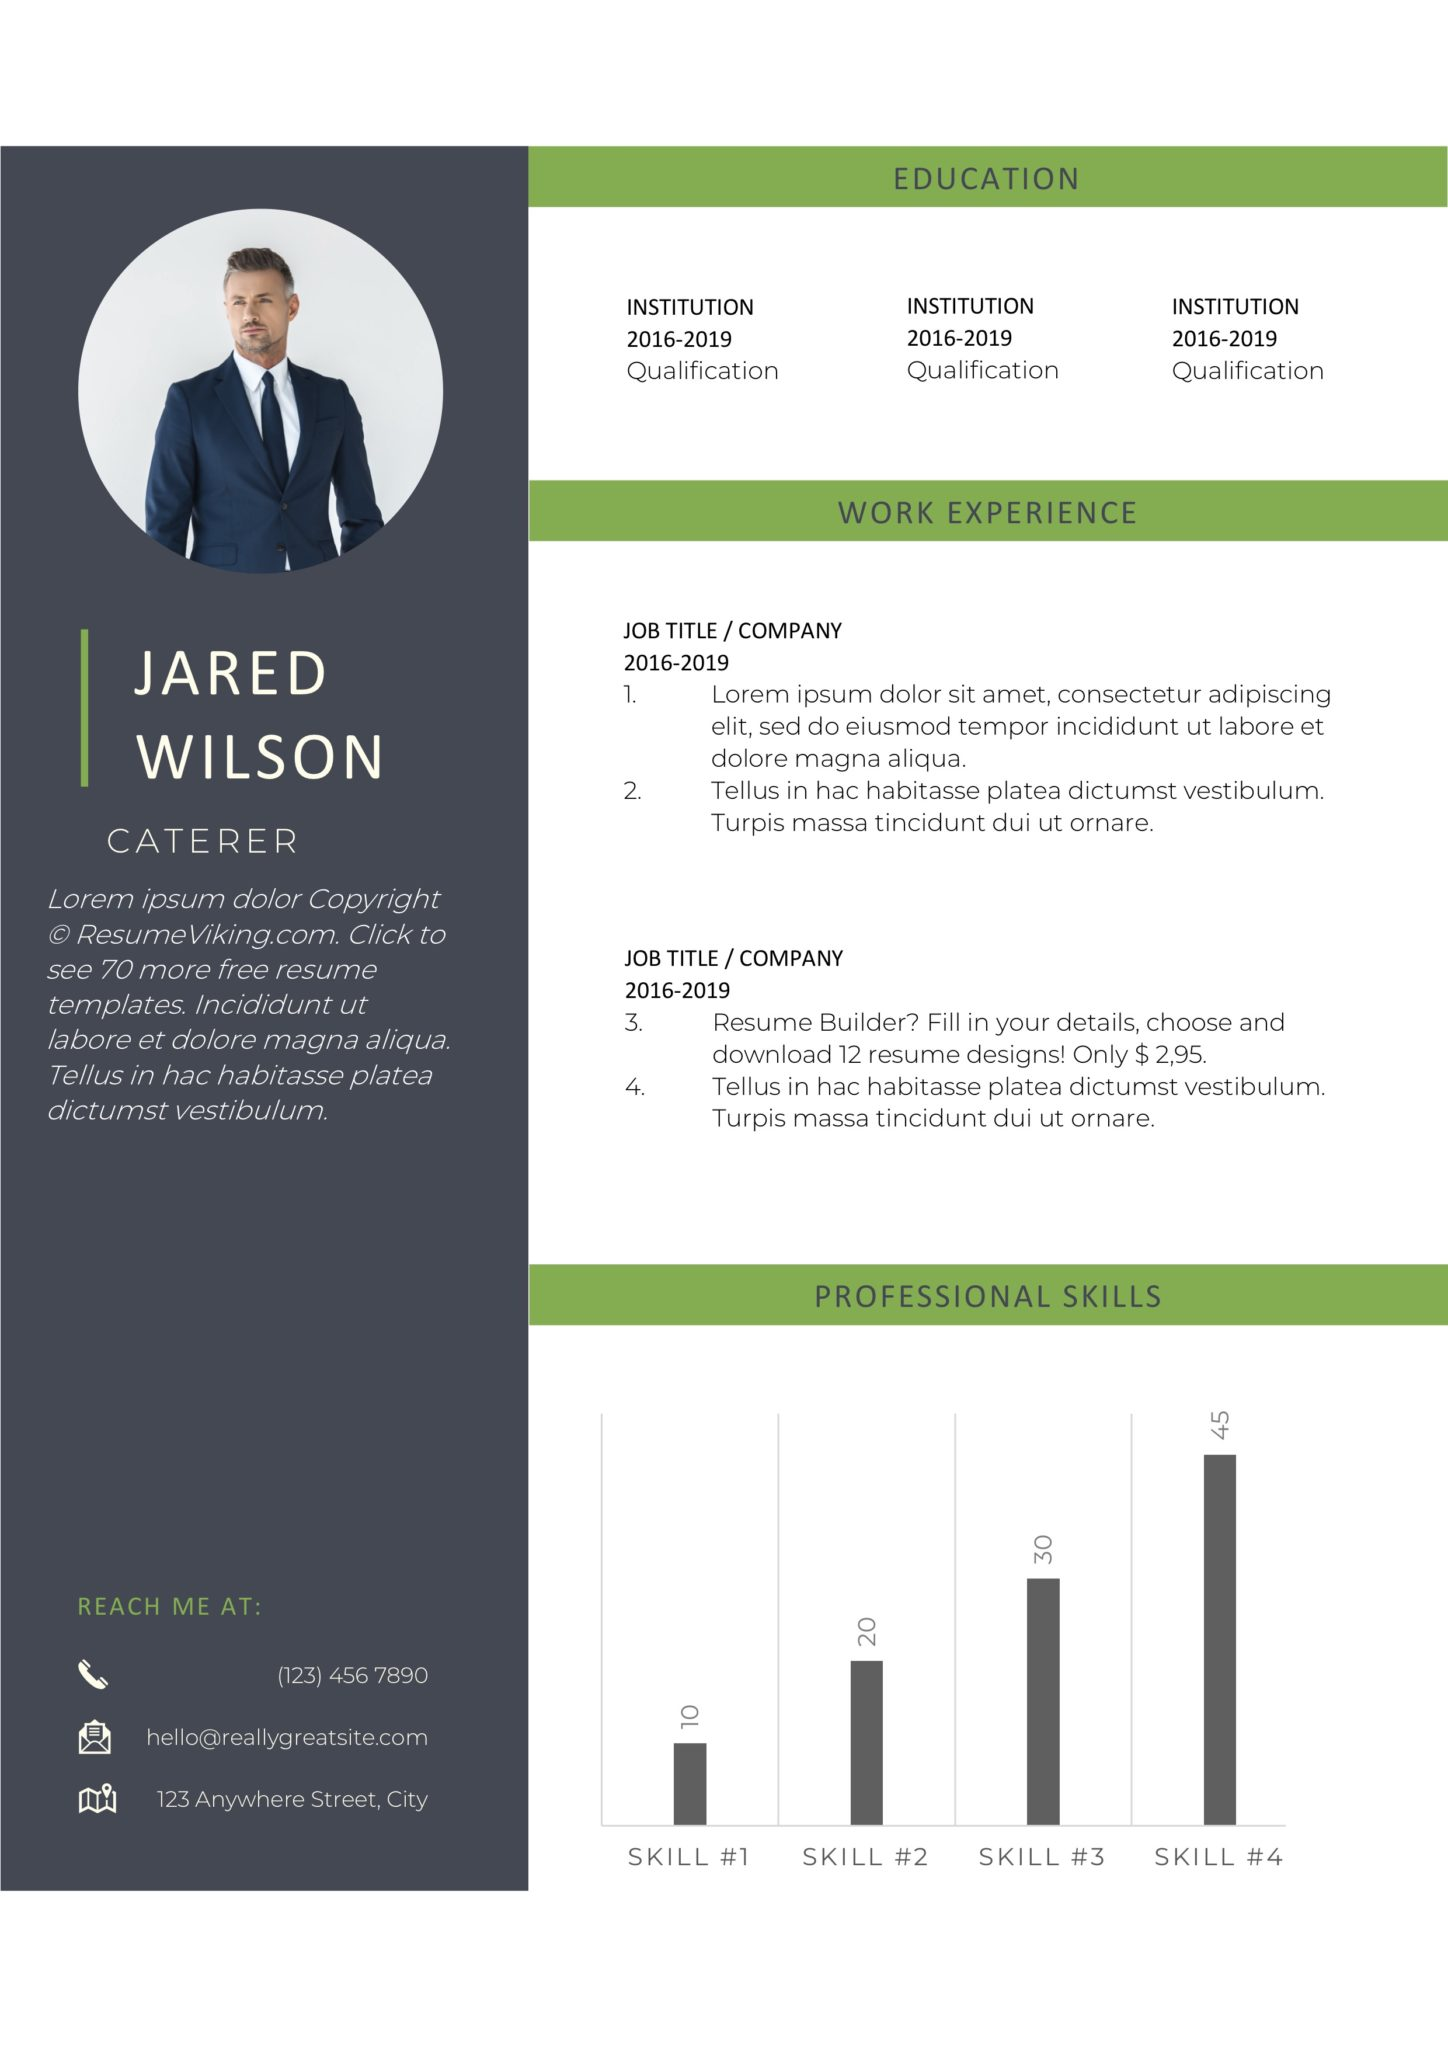 free word resume templates in ms for template resumeviking scaled objective food service Resume Free Resume Templates For 2020